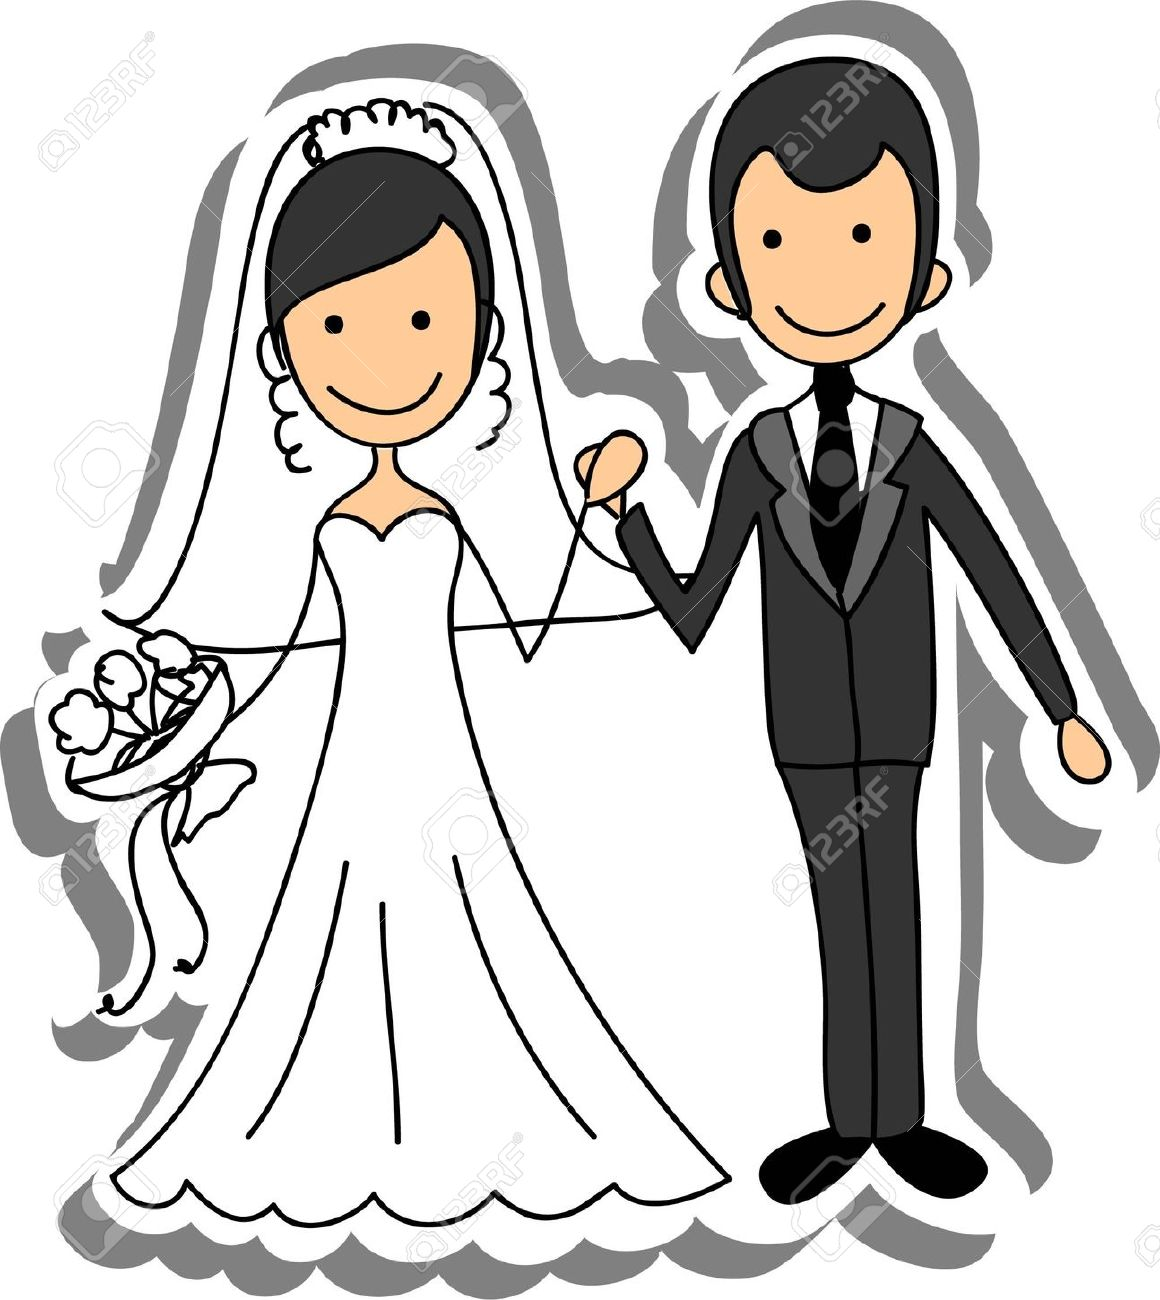 Bride and groom images clipart freeuse library 38+ Clipart Bride And Groom | ClipartLook freeuse library